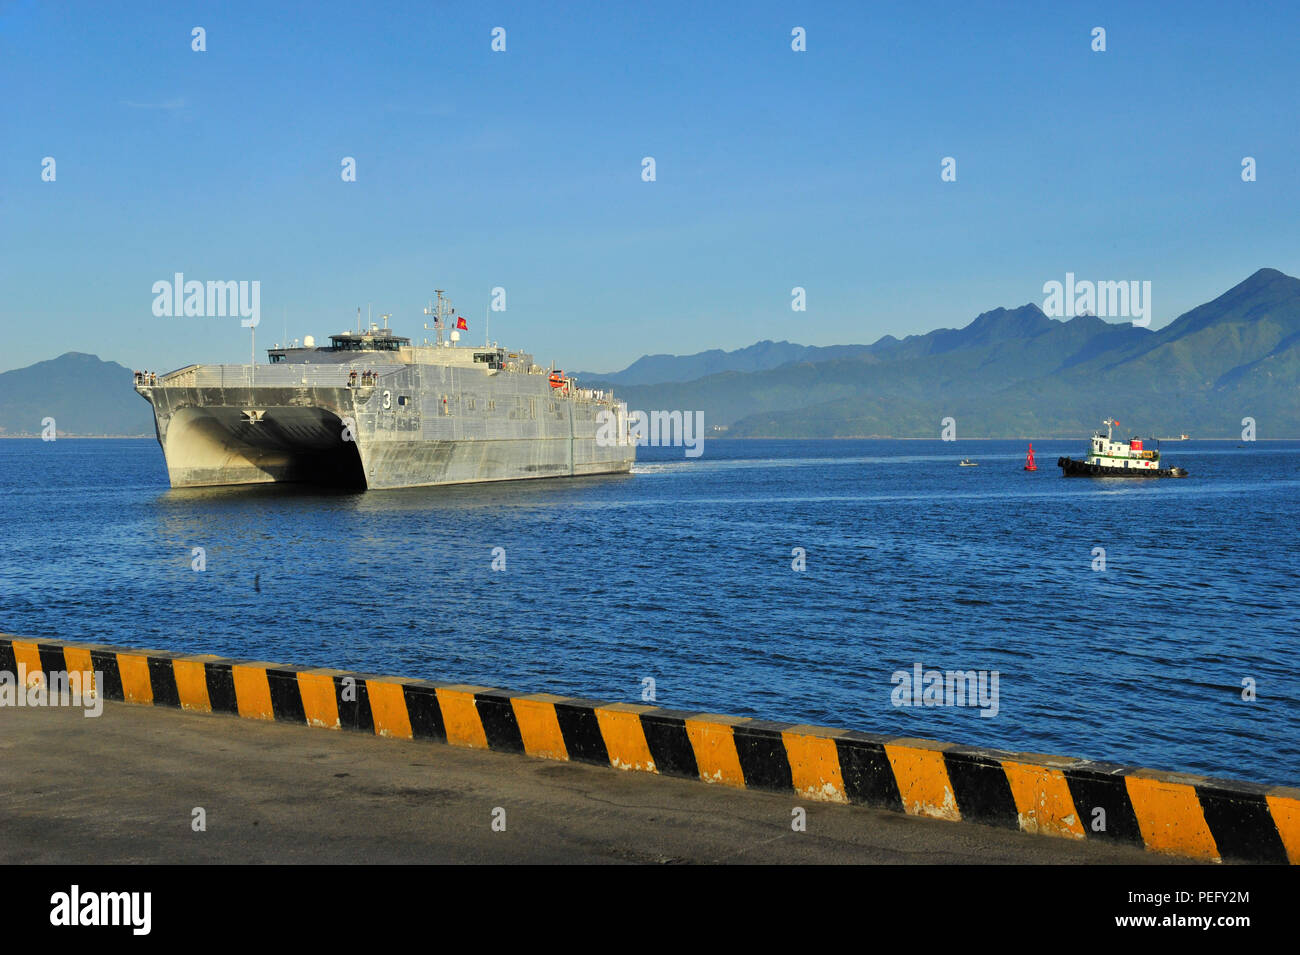 150817-N-YF678-024 DA NANG, Vietnam (Aug. 17, 2015) – The Military Sealift Command joint high speed vessel USNS Millinocket (JHSV 3) arrives in Vietnam, Aug. 17. Vietnam is the fifth stop for Millinocket and embarked Task Force Forager. Millinocket and embarked Task Force Forager are serving as the secondary platform for Pacific Partnership, led by an expeditionary command element from the Navy's 30th Naval Construction Regiment (30 NCR) from Port Hueneme, Calif. Now in its 10th iteration, Pacific Partnership is the largest annual multilateral humanitarian assistance and disaster relief prepar - Stock Image